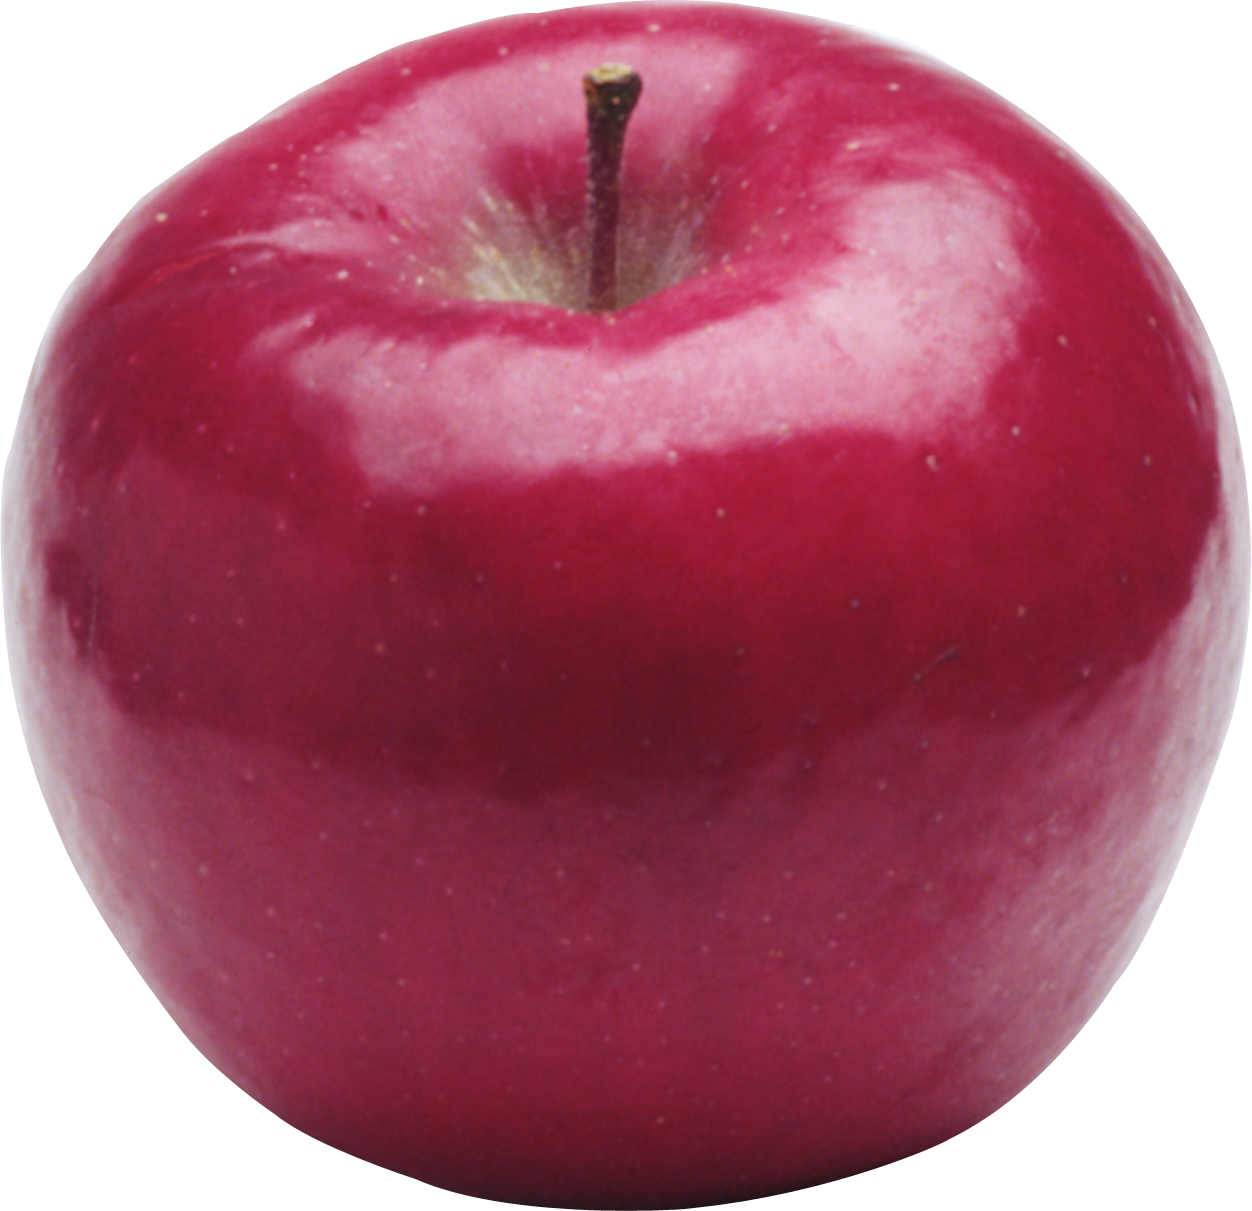 Red Round Apple PNG Image